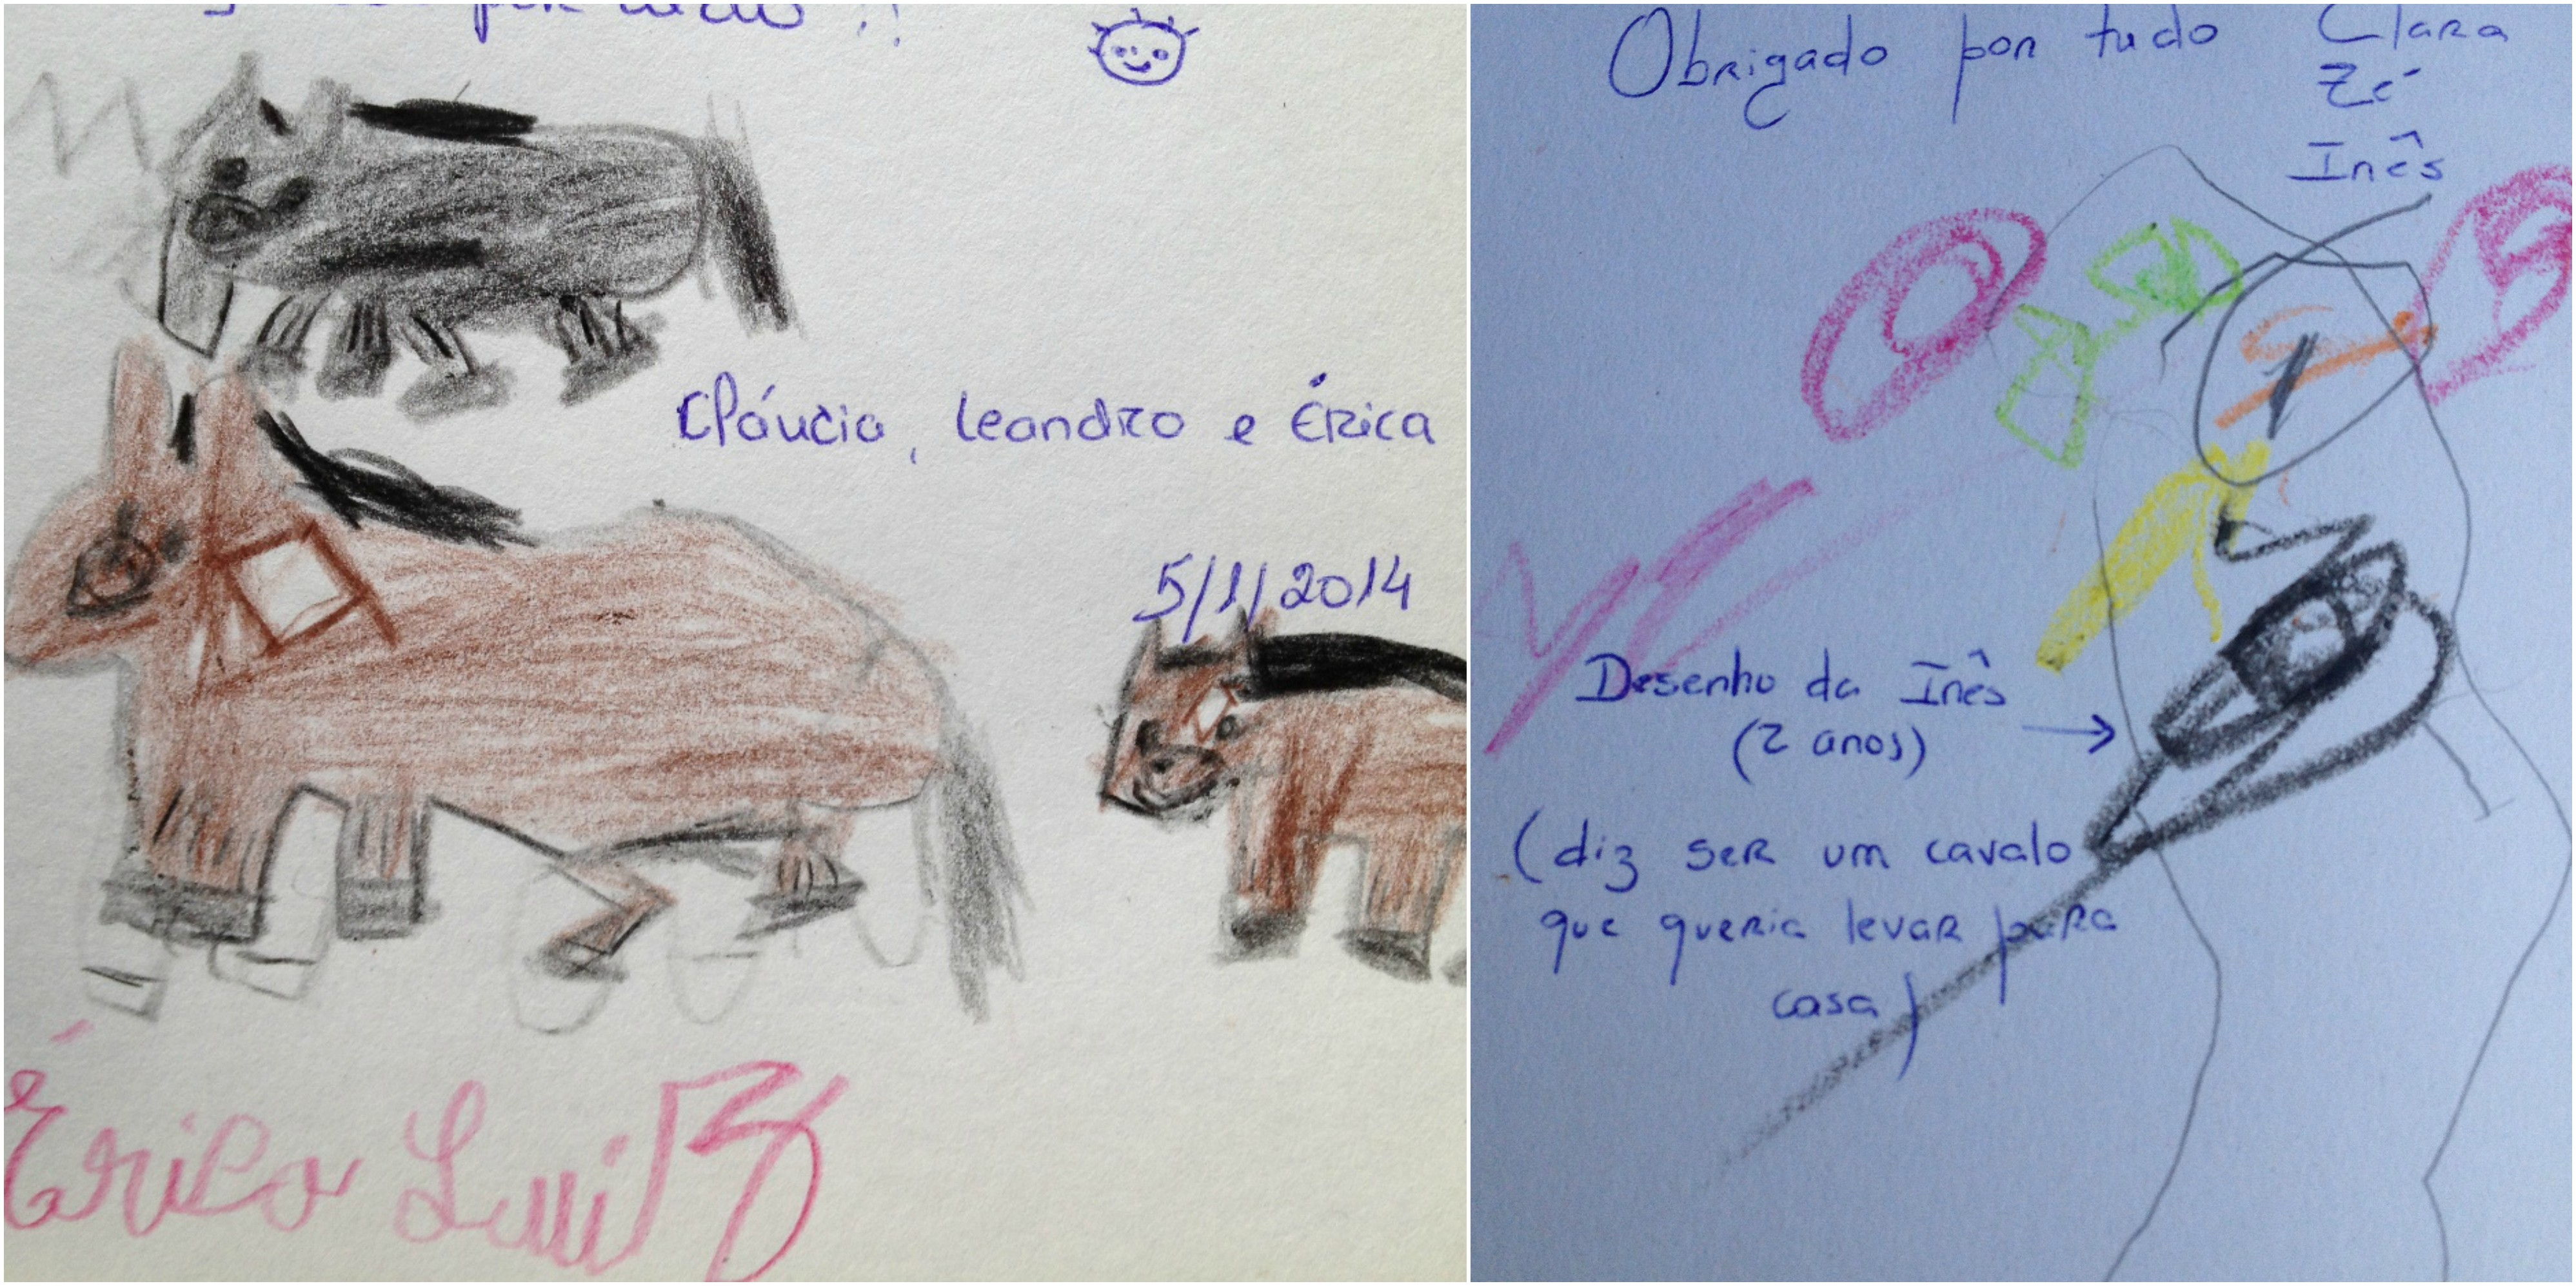 Left, Érica's drawing and, right, Inês' drawing